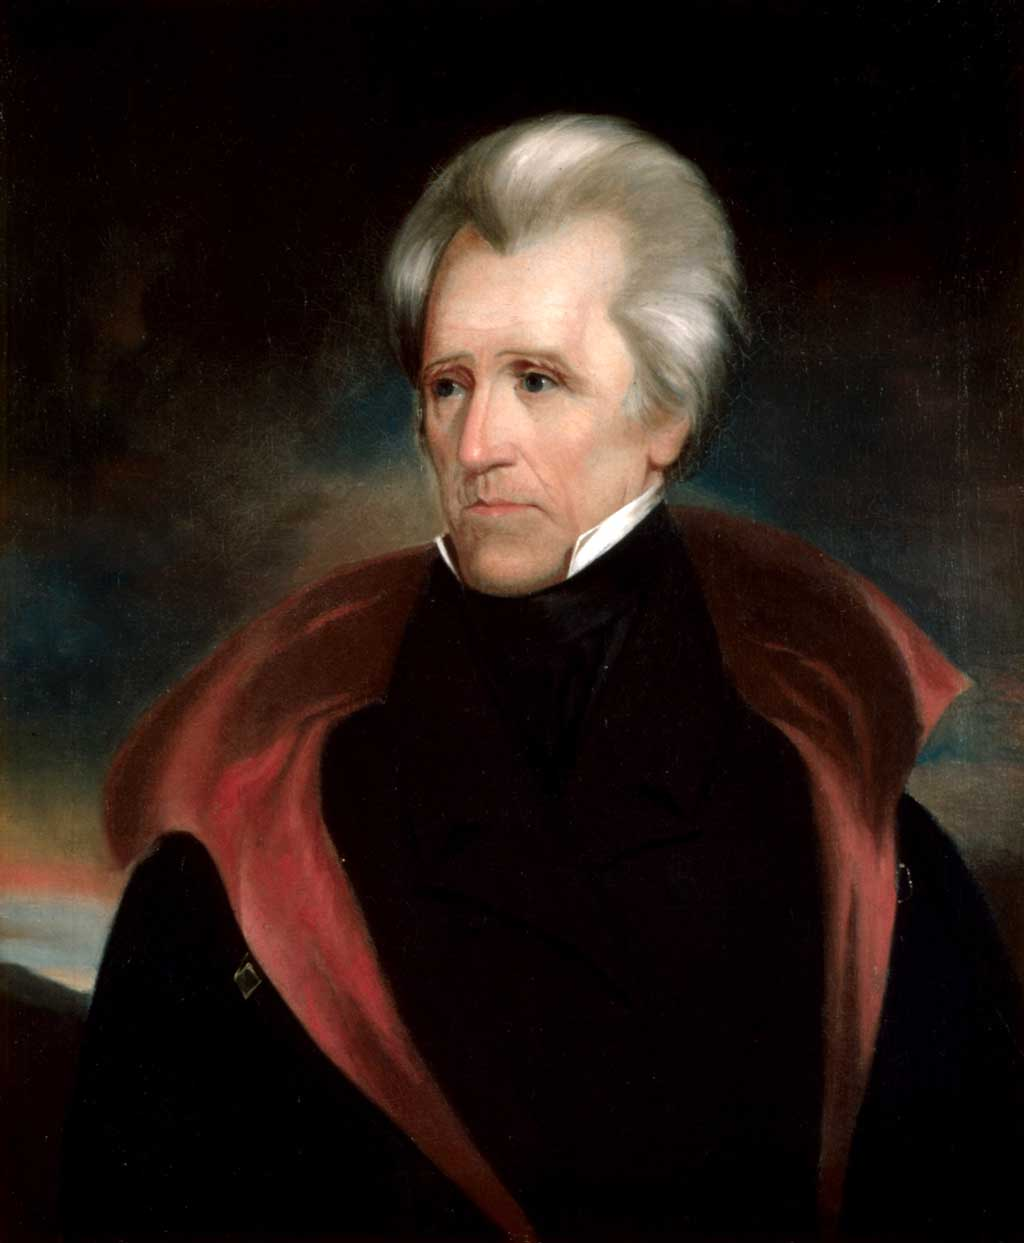 Portrait of Andrew Jackson, the seventh president of the United States.